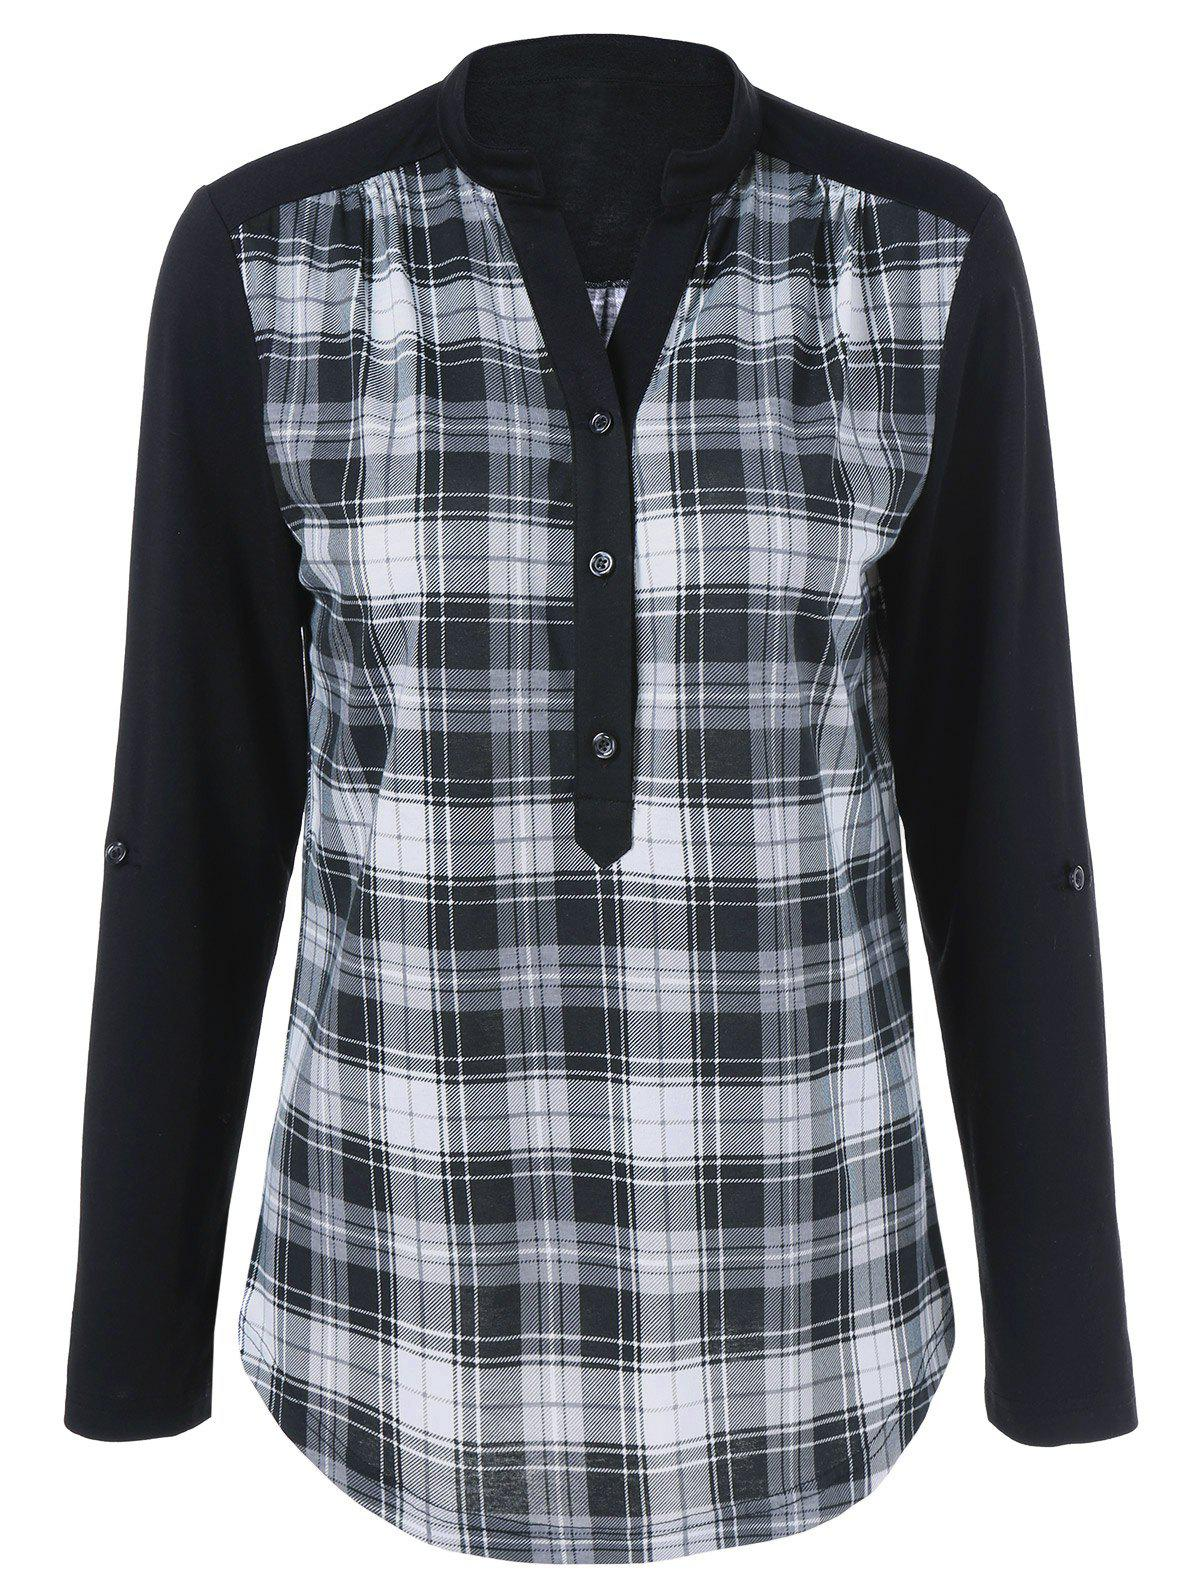 Plaid Trim Single Breasted T-ShirtWOMEN<br><br>Size: 4XL; Color: CHECKED; Material: Polyester,Spandex; Shirt Length: Regular; Sleeve Length: Full; Collar: Stand-Up Collar; Style: Casual; Season: Fall,Spring; Pattern Type: Plaid; Weight: 0.370kg; Package Contents: 1 x T-Shirt;